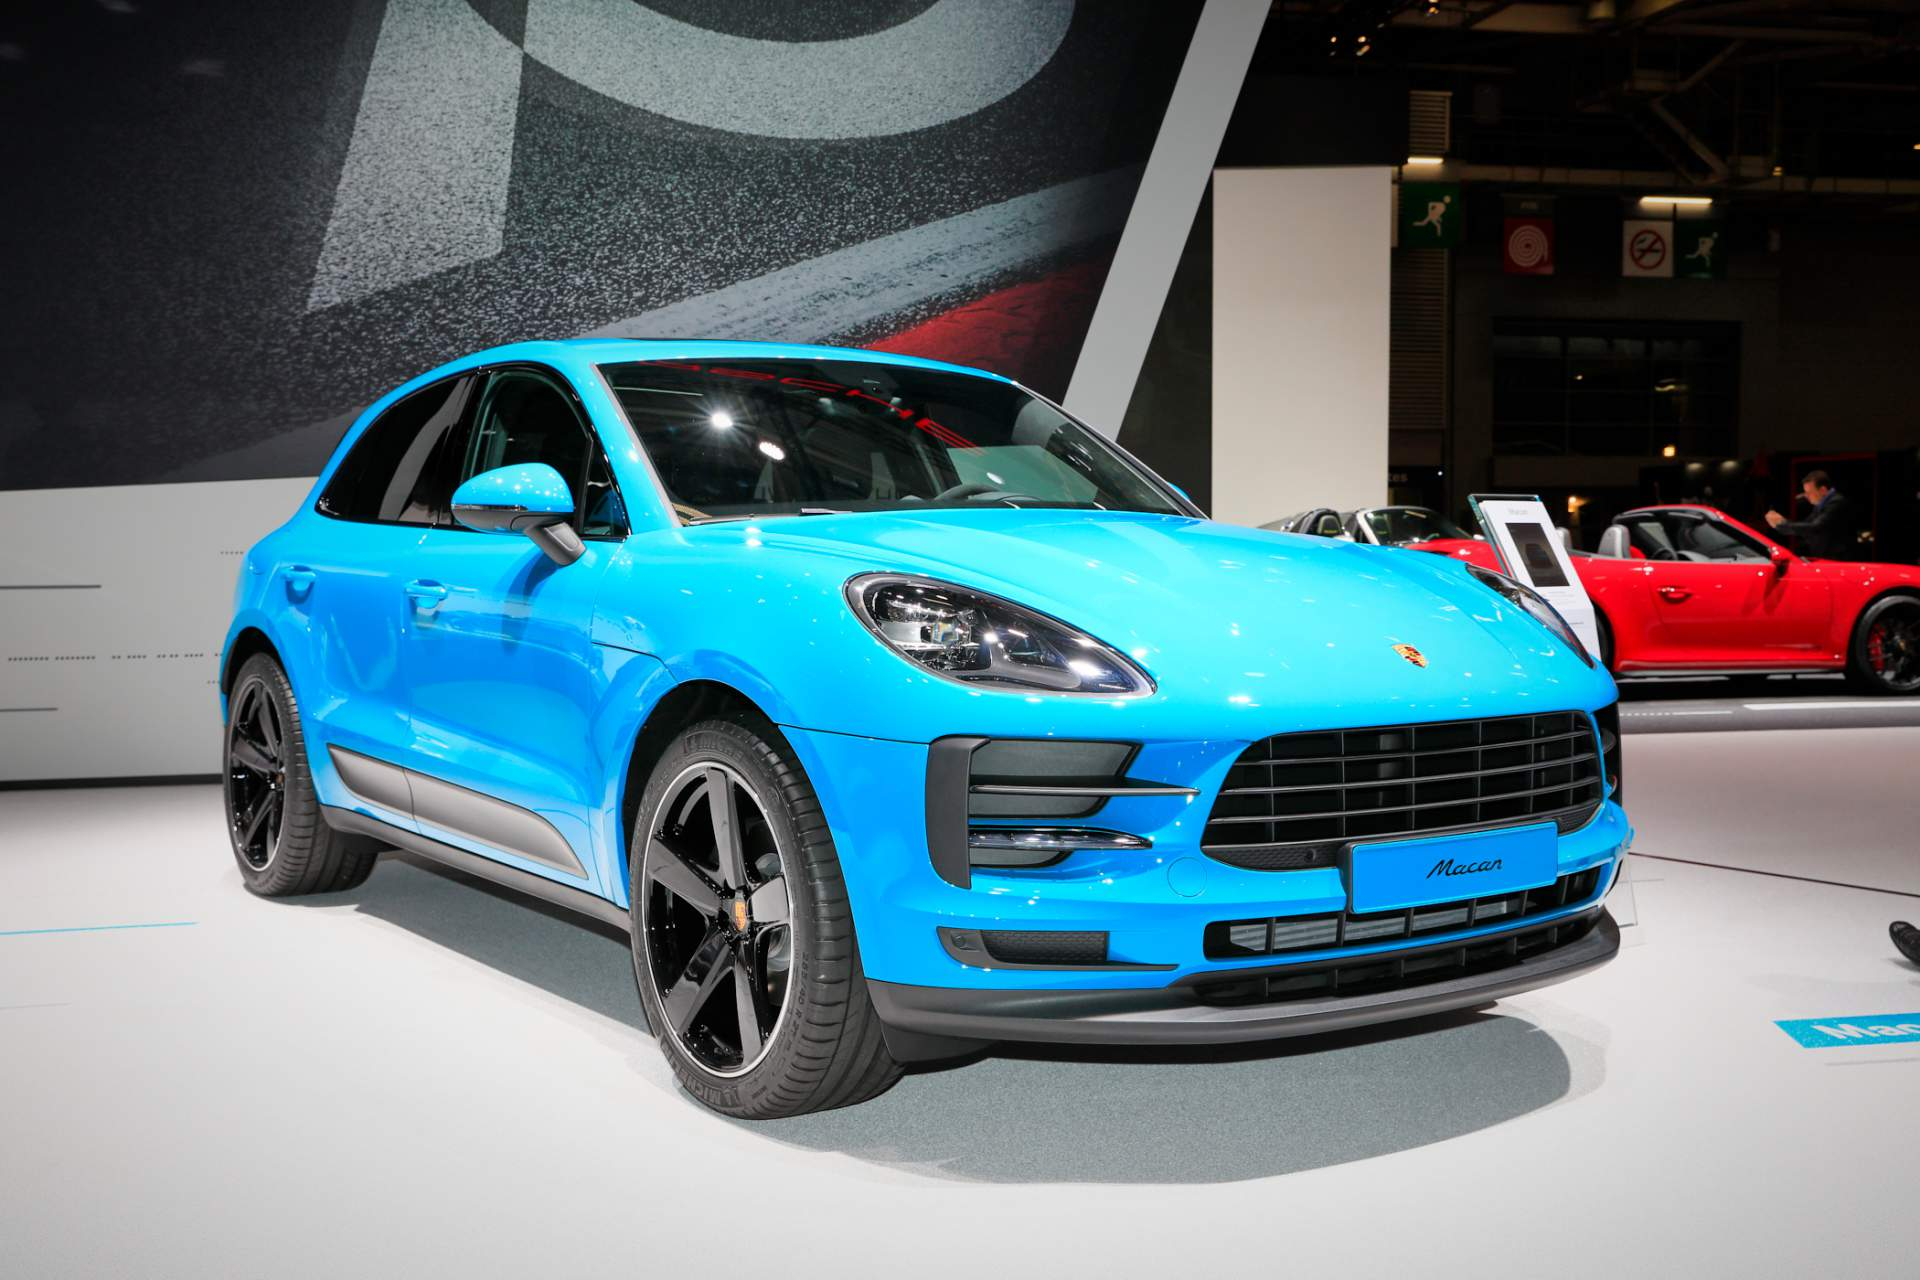 90e897e5-2019-porsche-macan-at-paris-mot